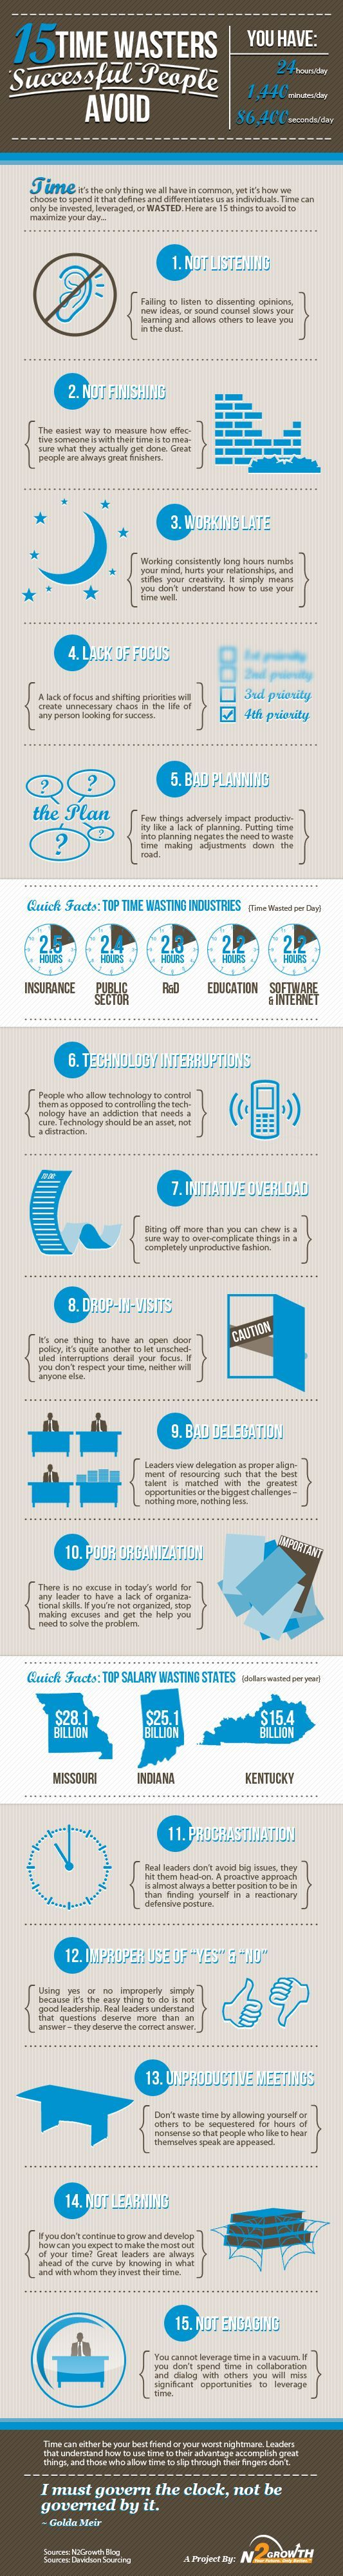 infographic-15-things